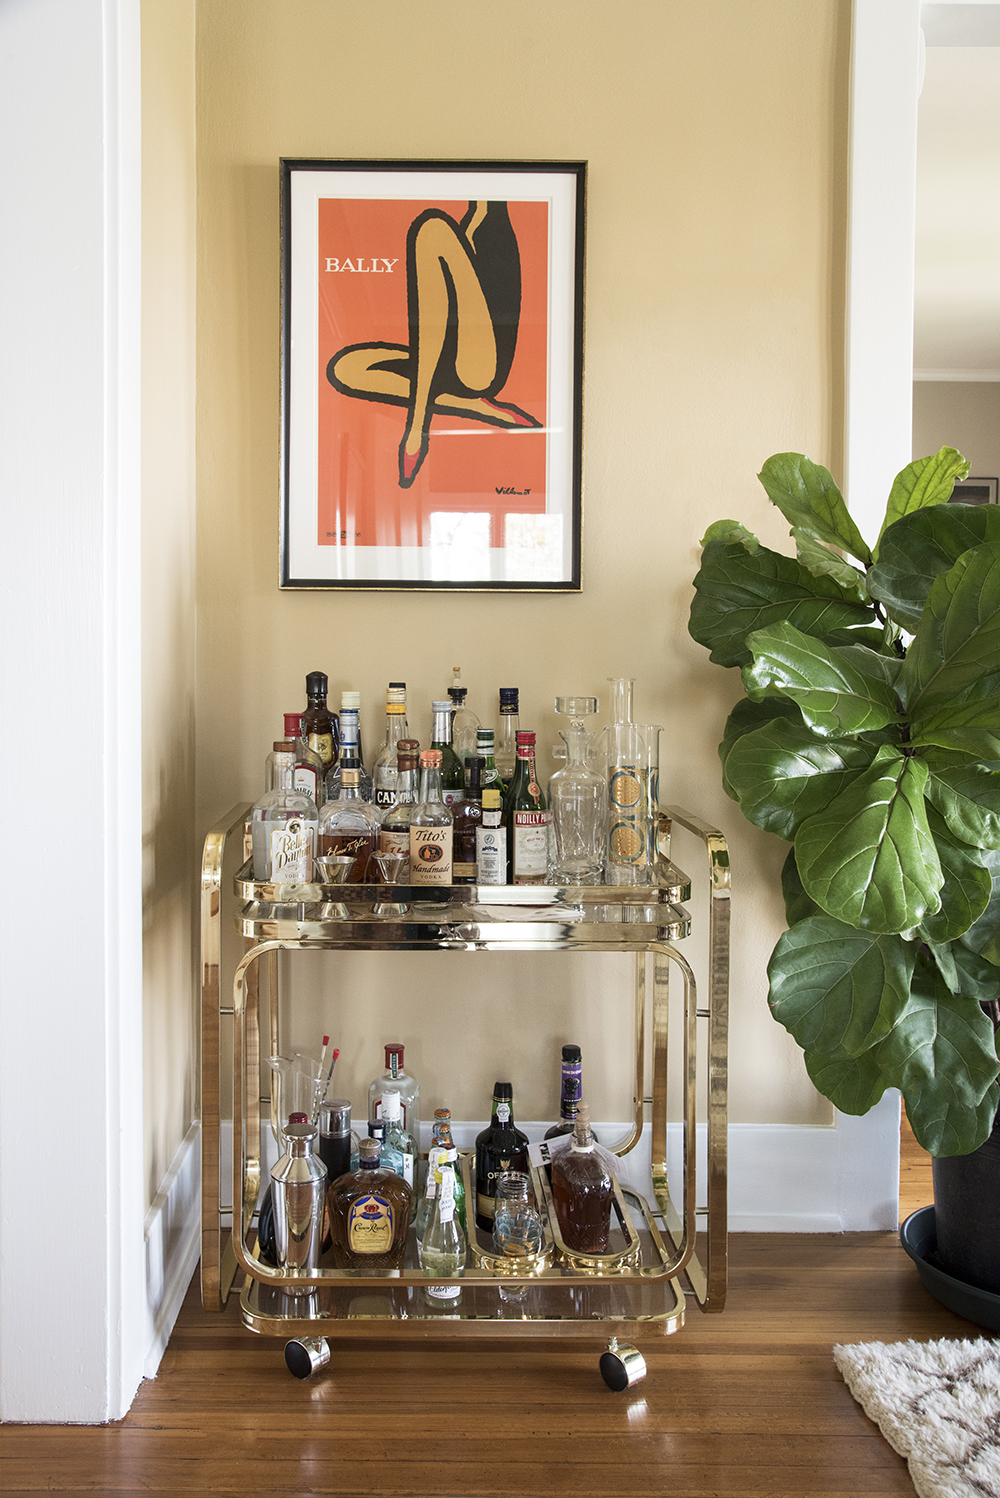 6 Ways to Style a Bar Cart - roomfortuesday.com